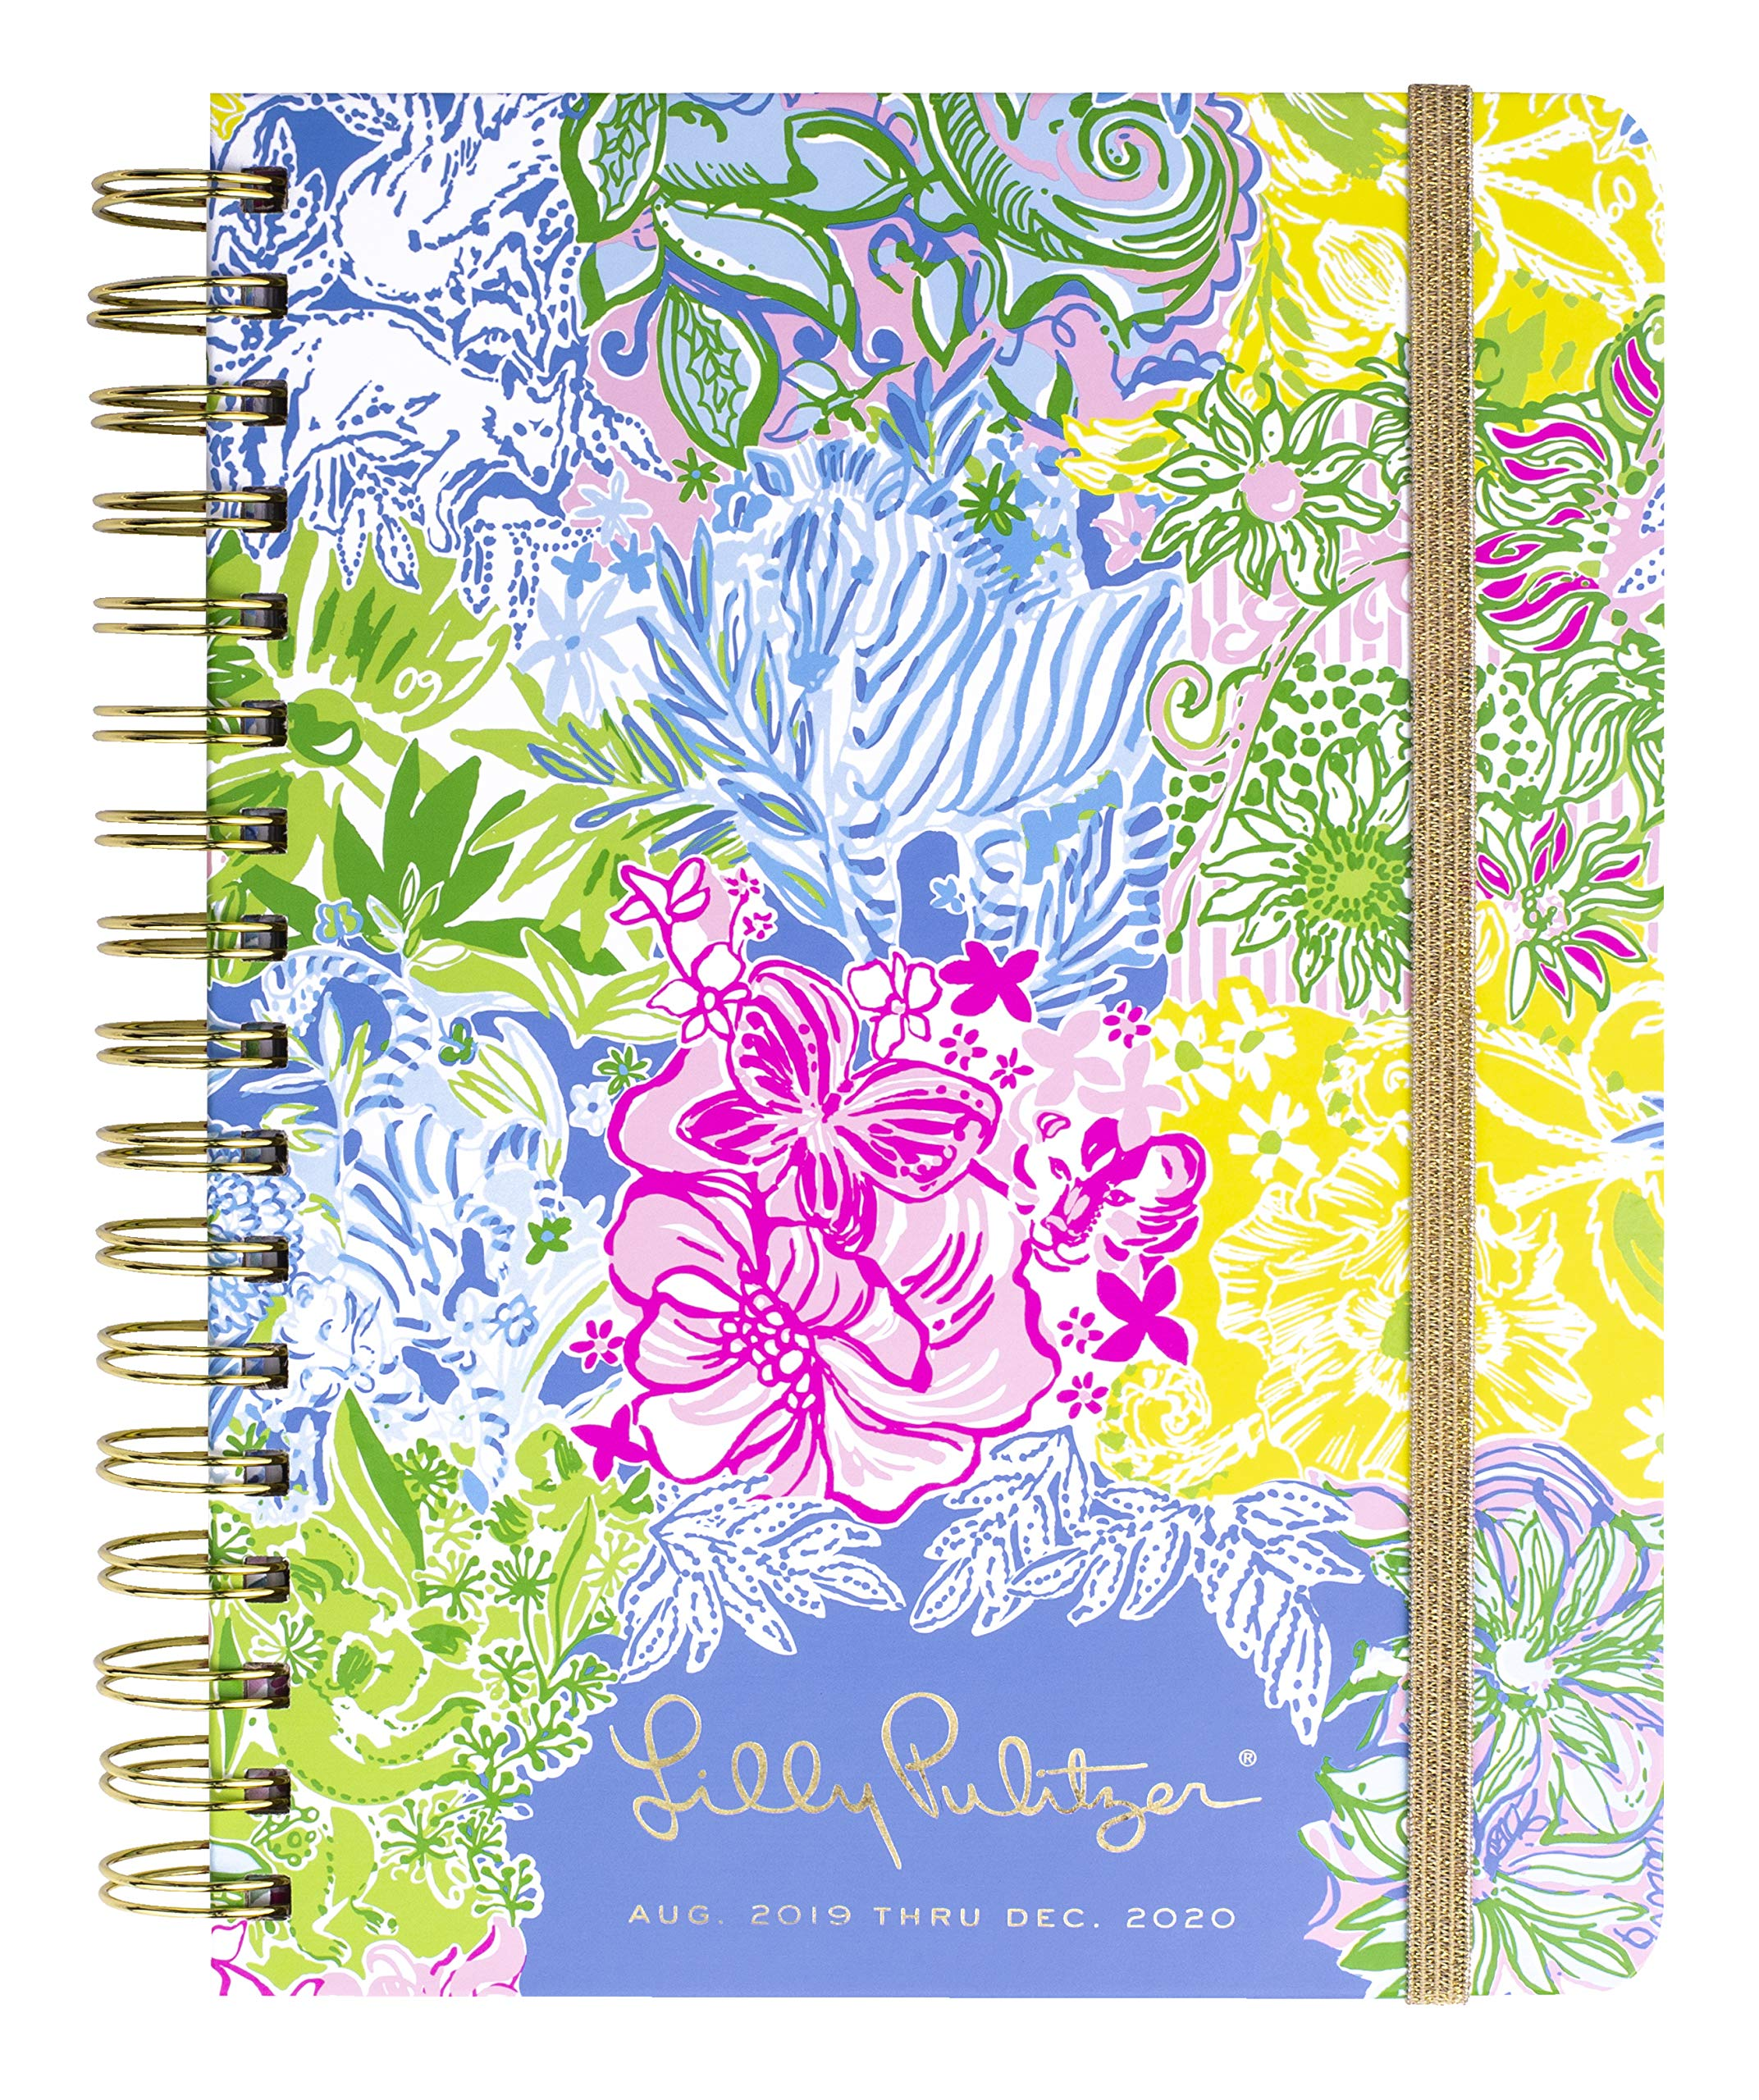 Lilly Pulitzer Large Aug. 2019 - Dec. 2020 17 Month Hardcover Agenda, 8.88'' x 6.75'' Personal Planner with Monthly and Weekly Spreads, Cheek to Cheek by Lilly Pulitzer